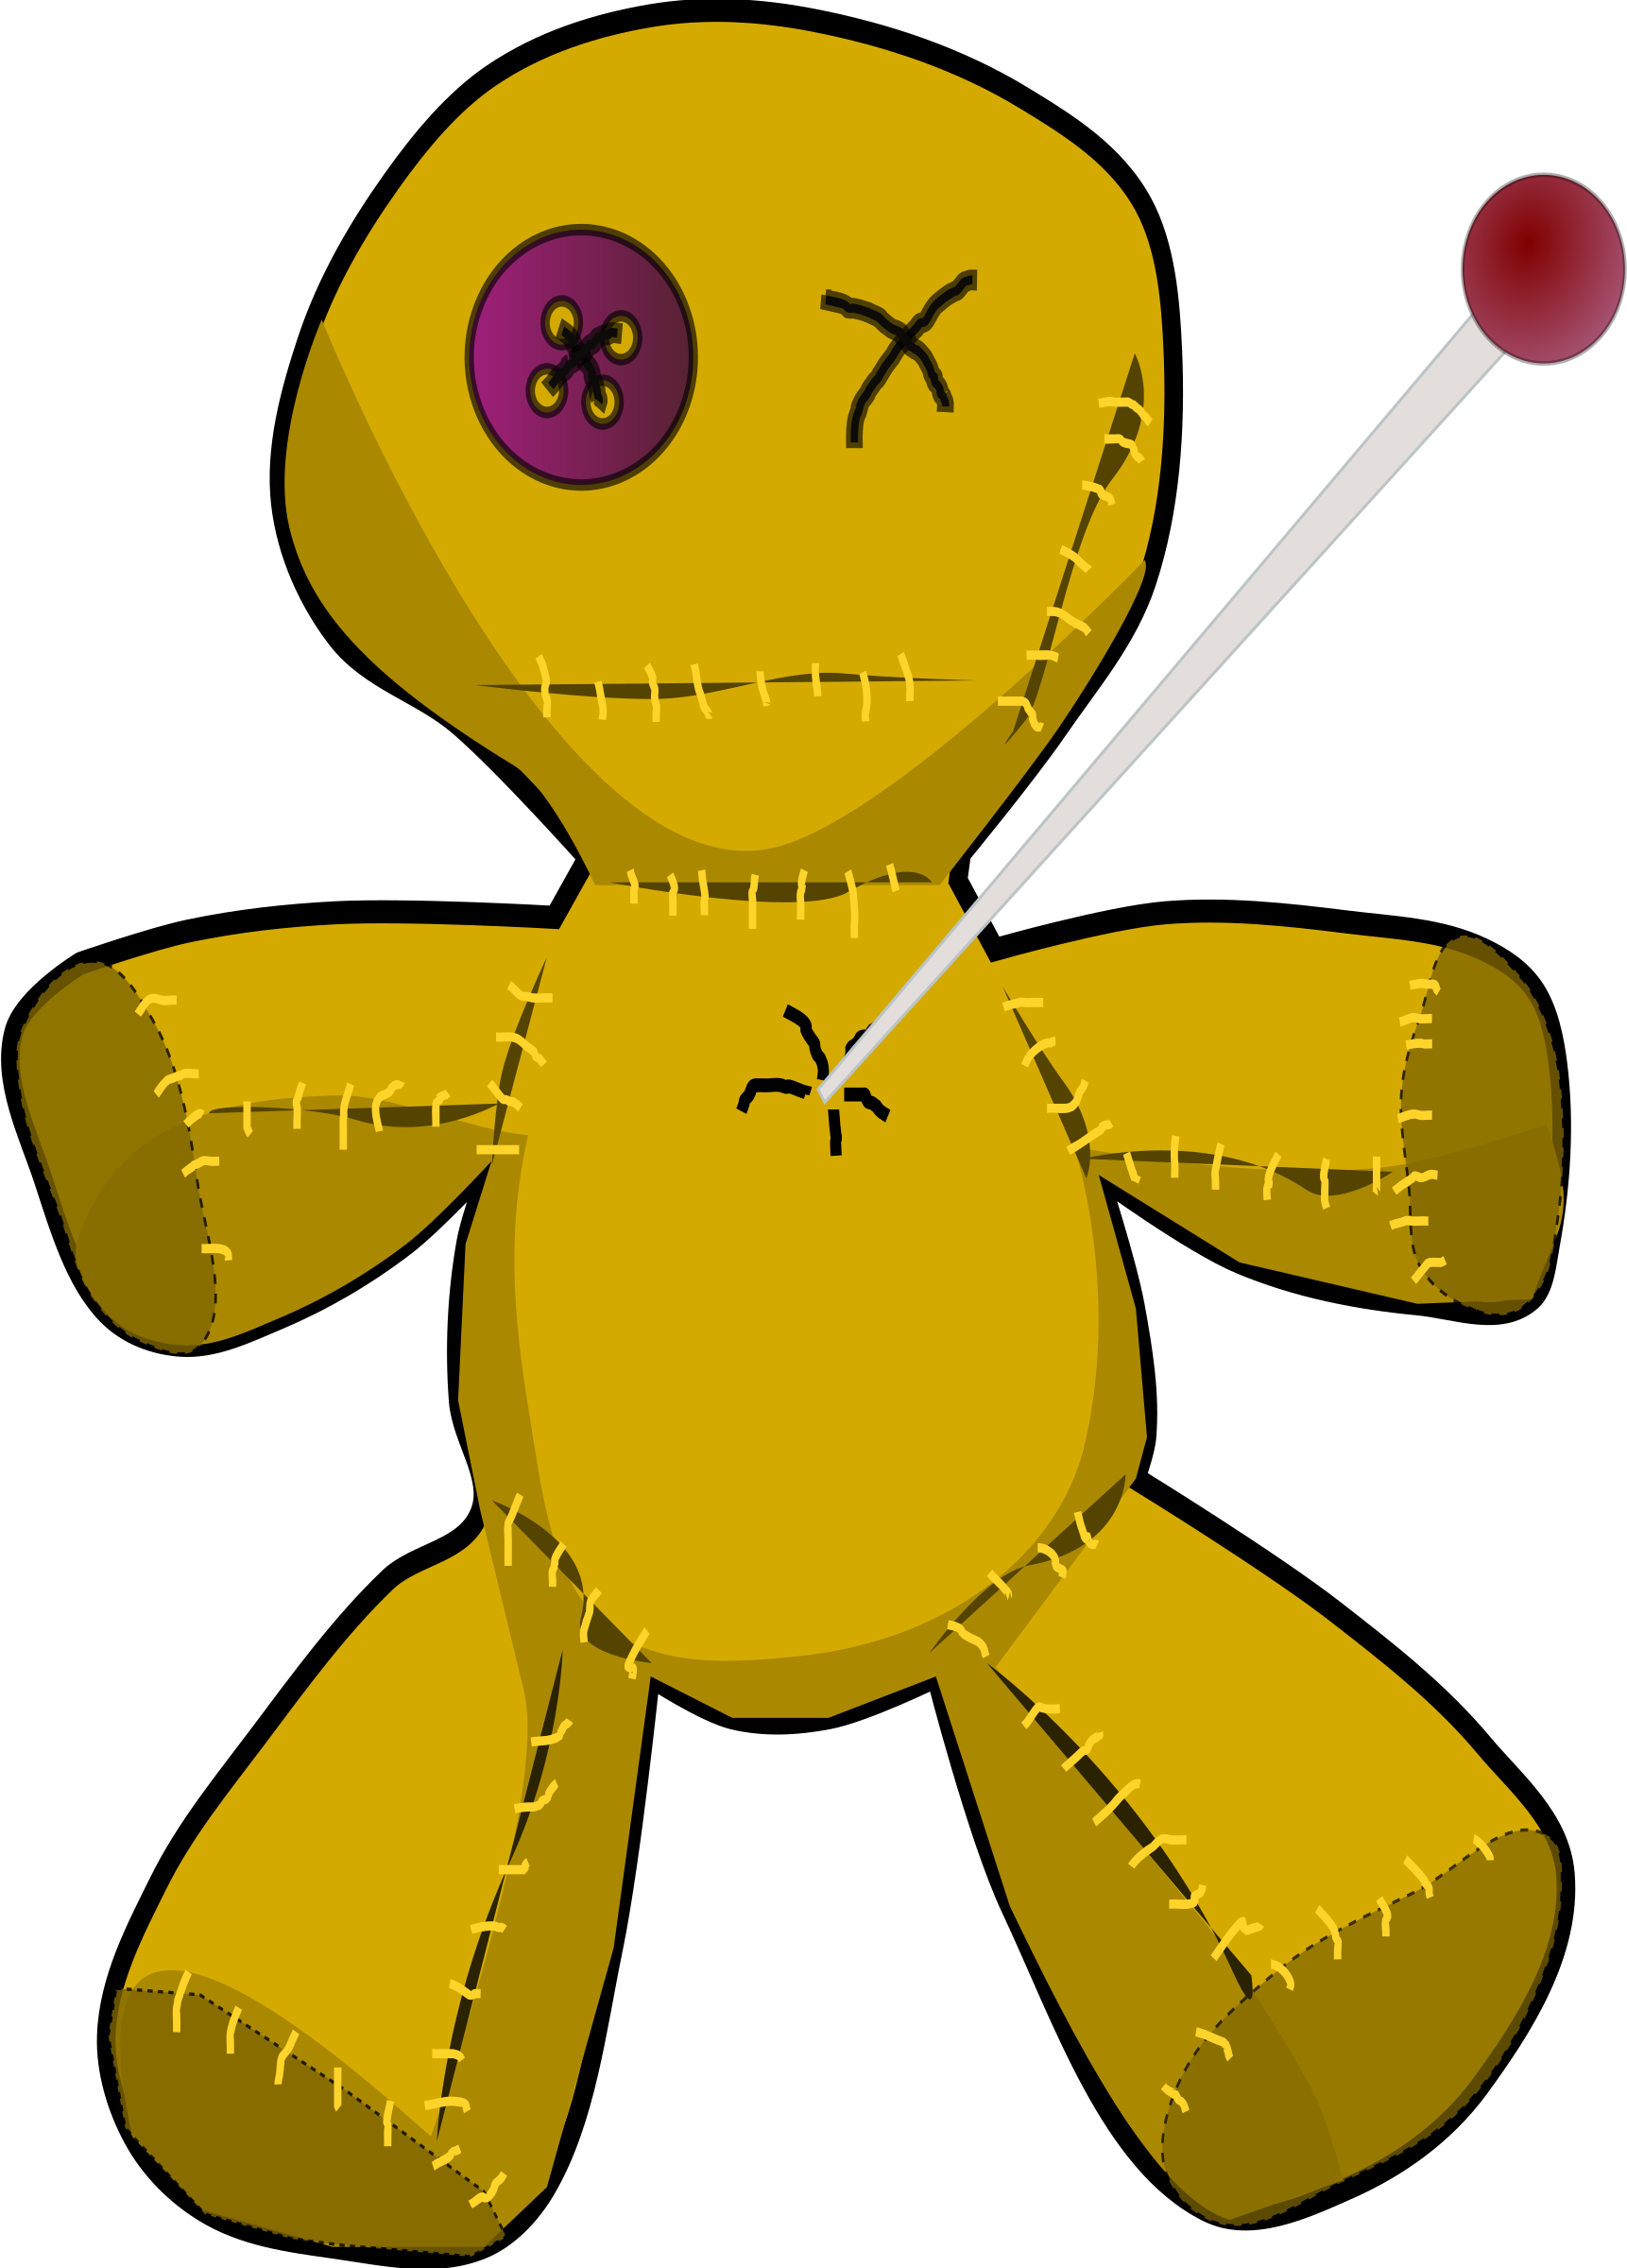 voodoo doll by artbejo